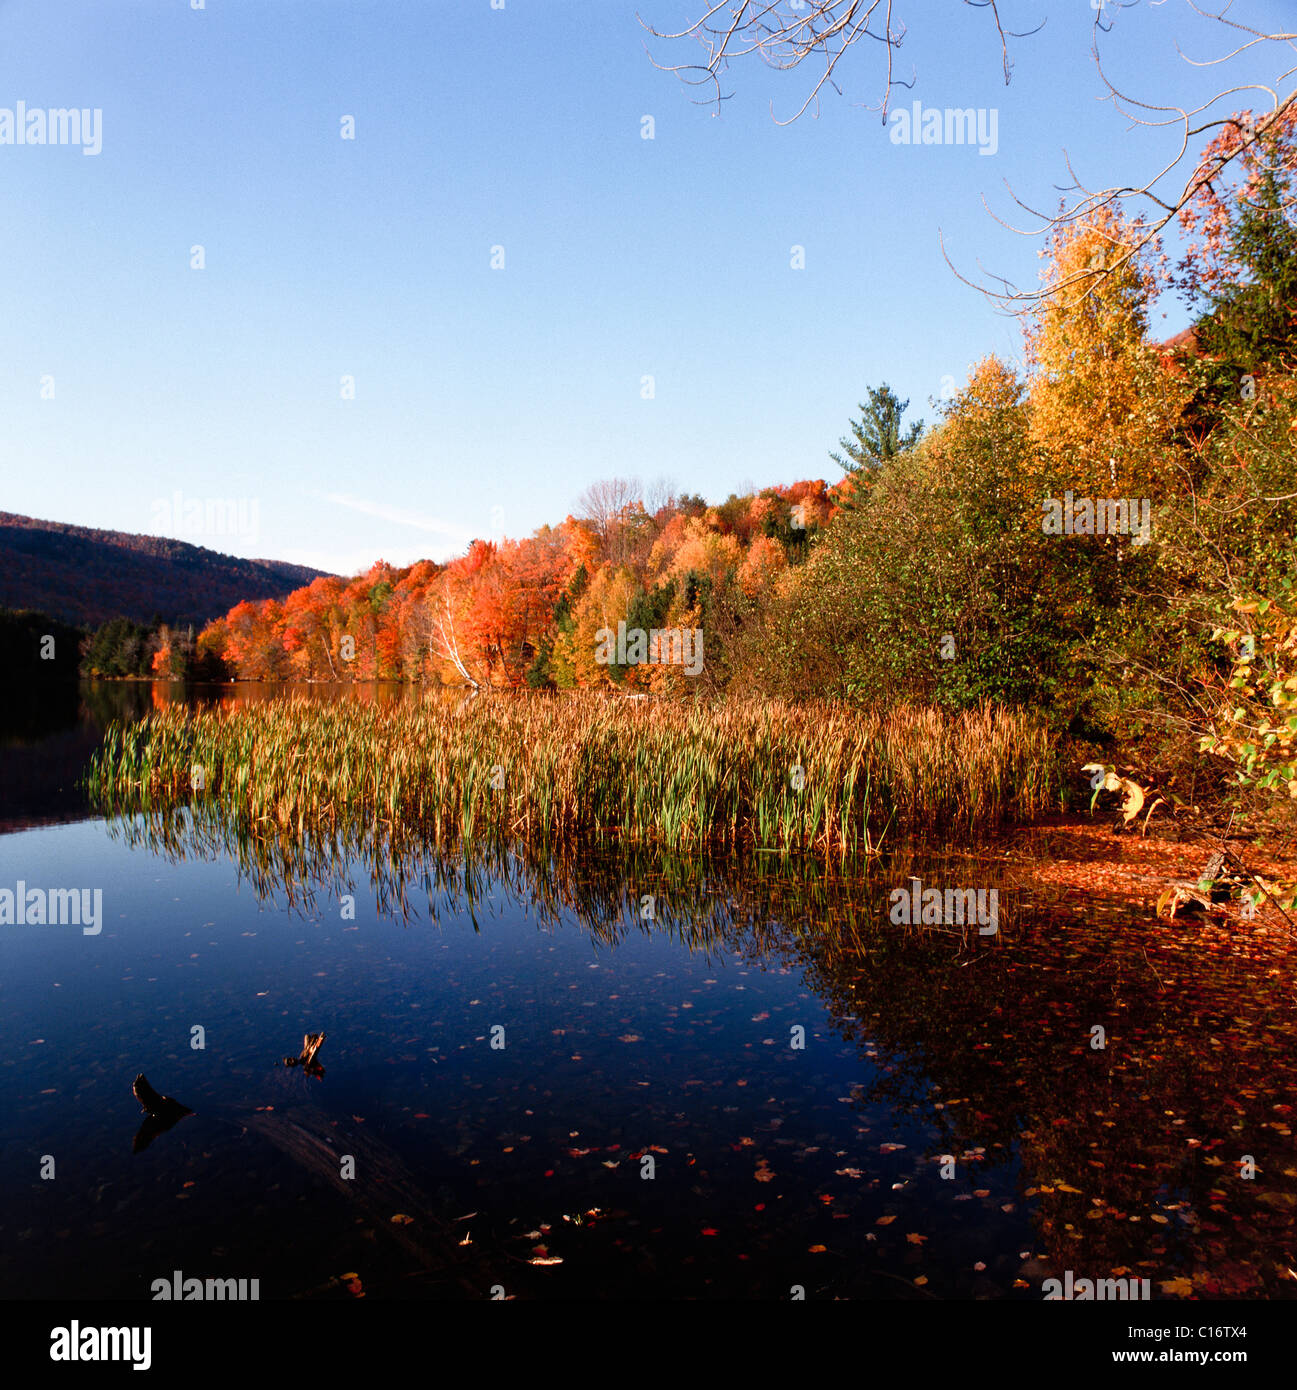 Autumnal coloured trees, Indian summer, New England, USA Stock Photo